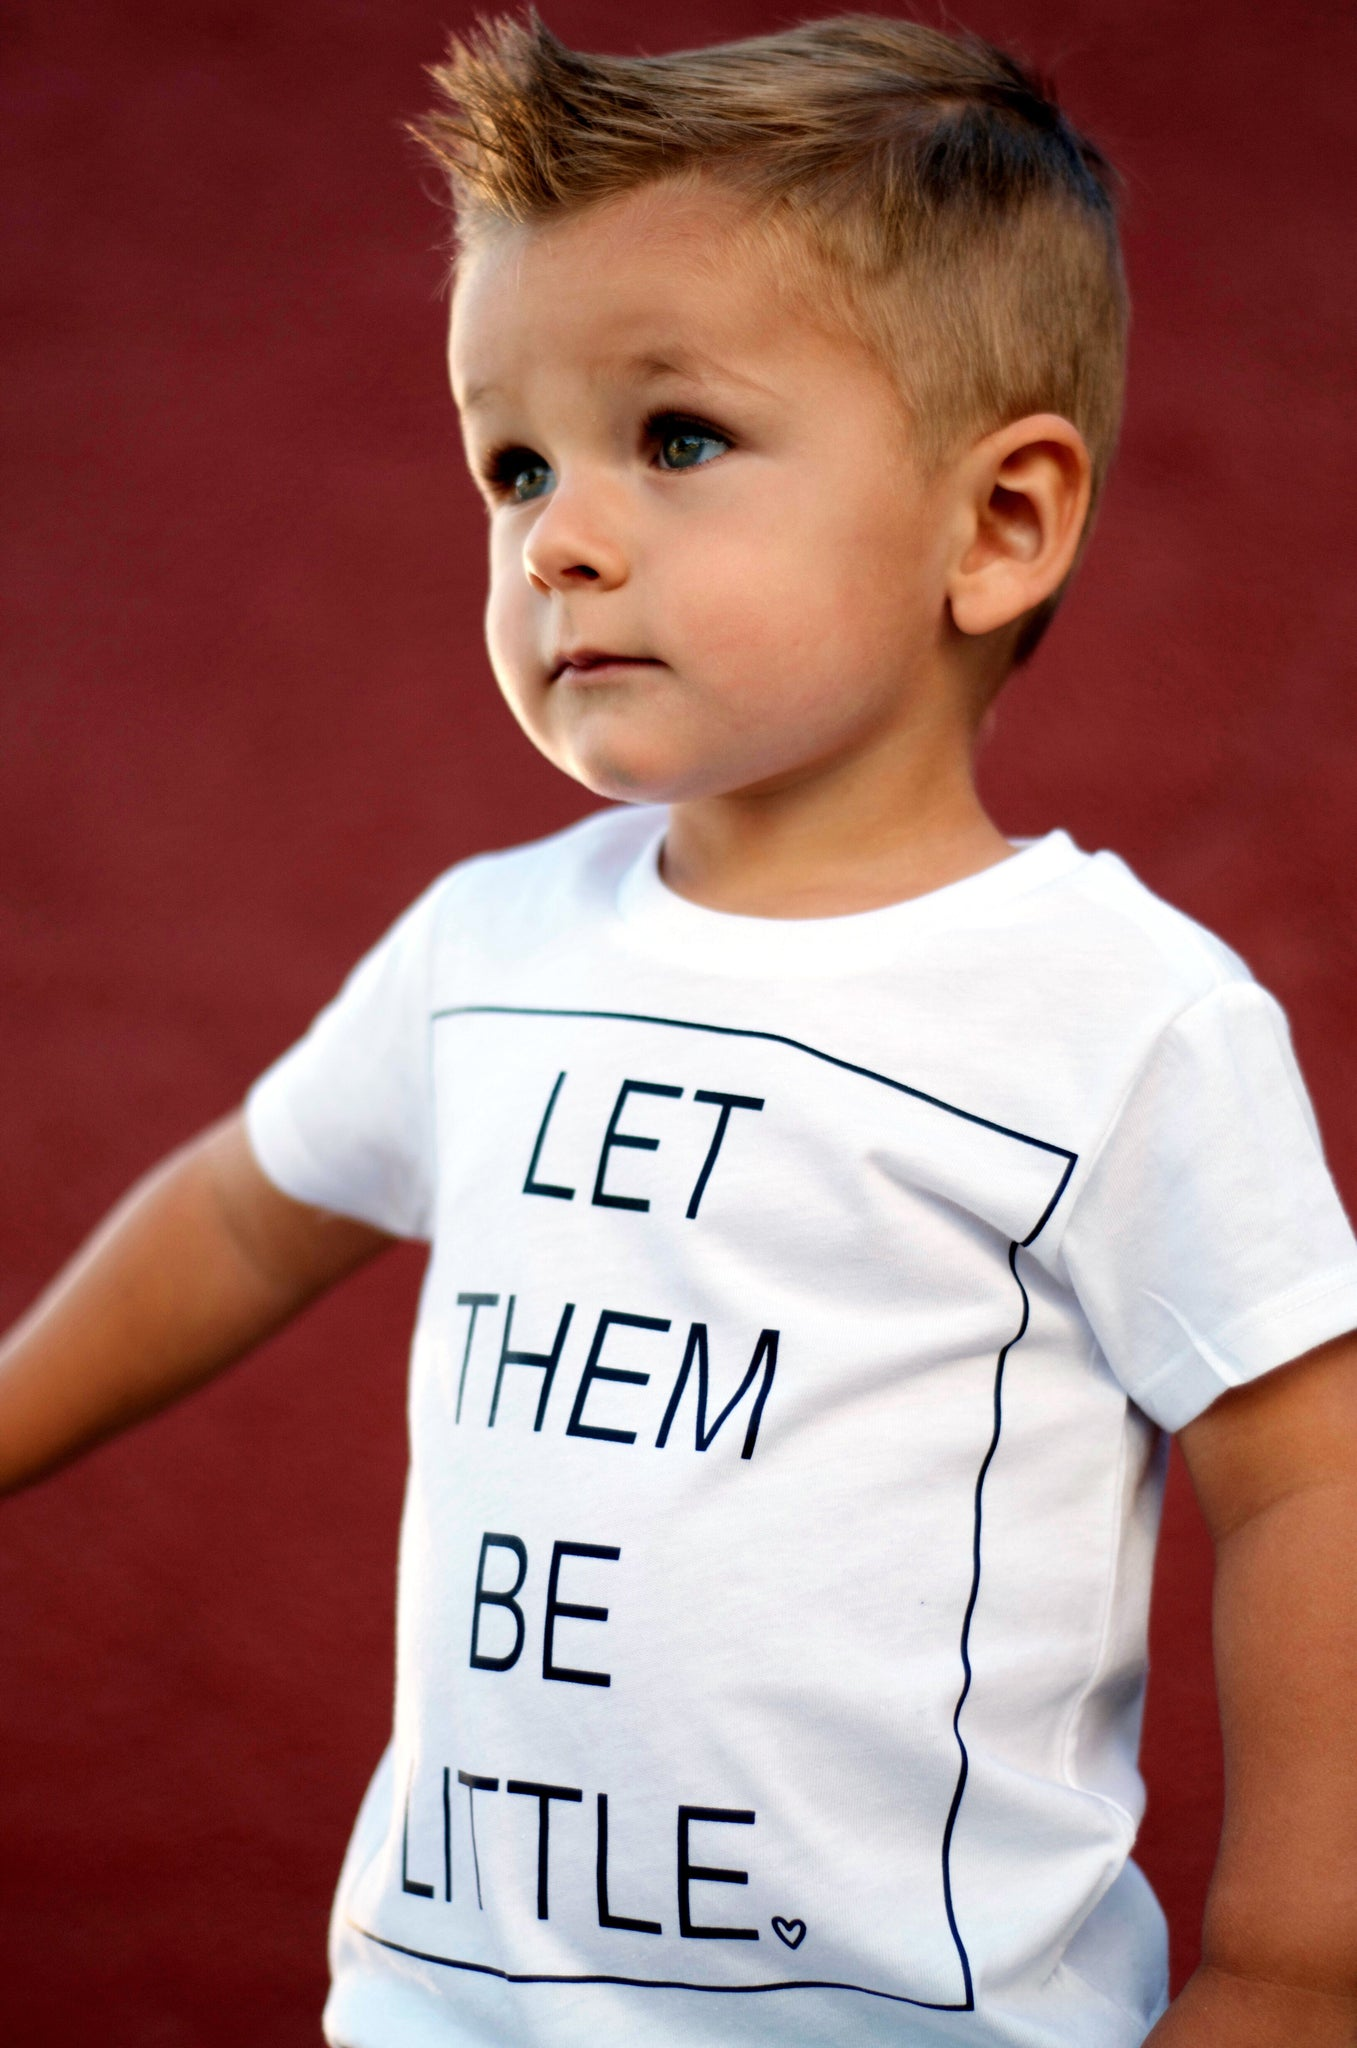 Let Them Be Little {kids}